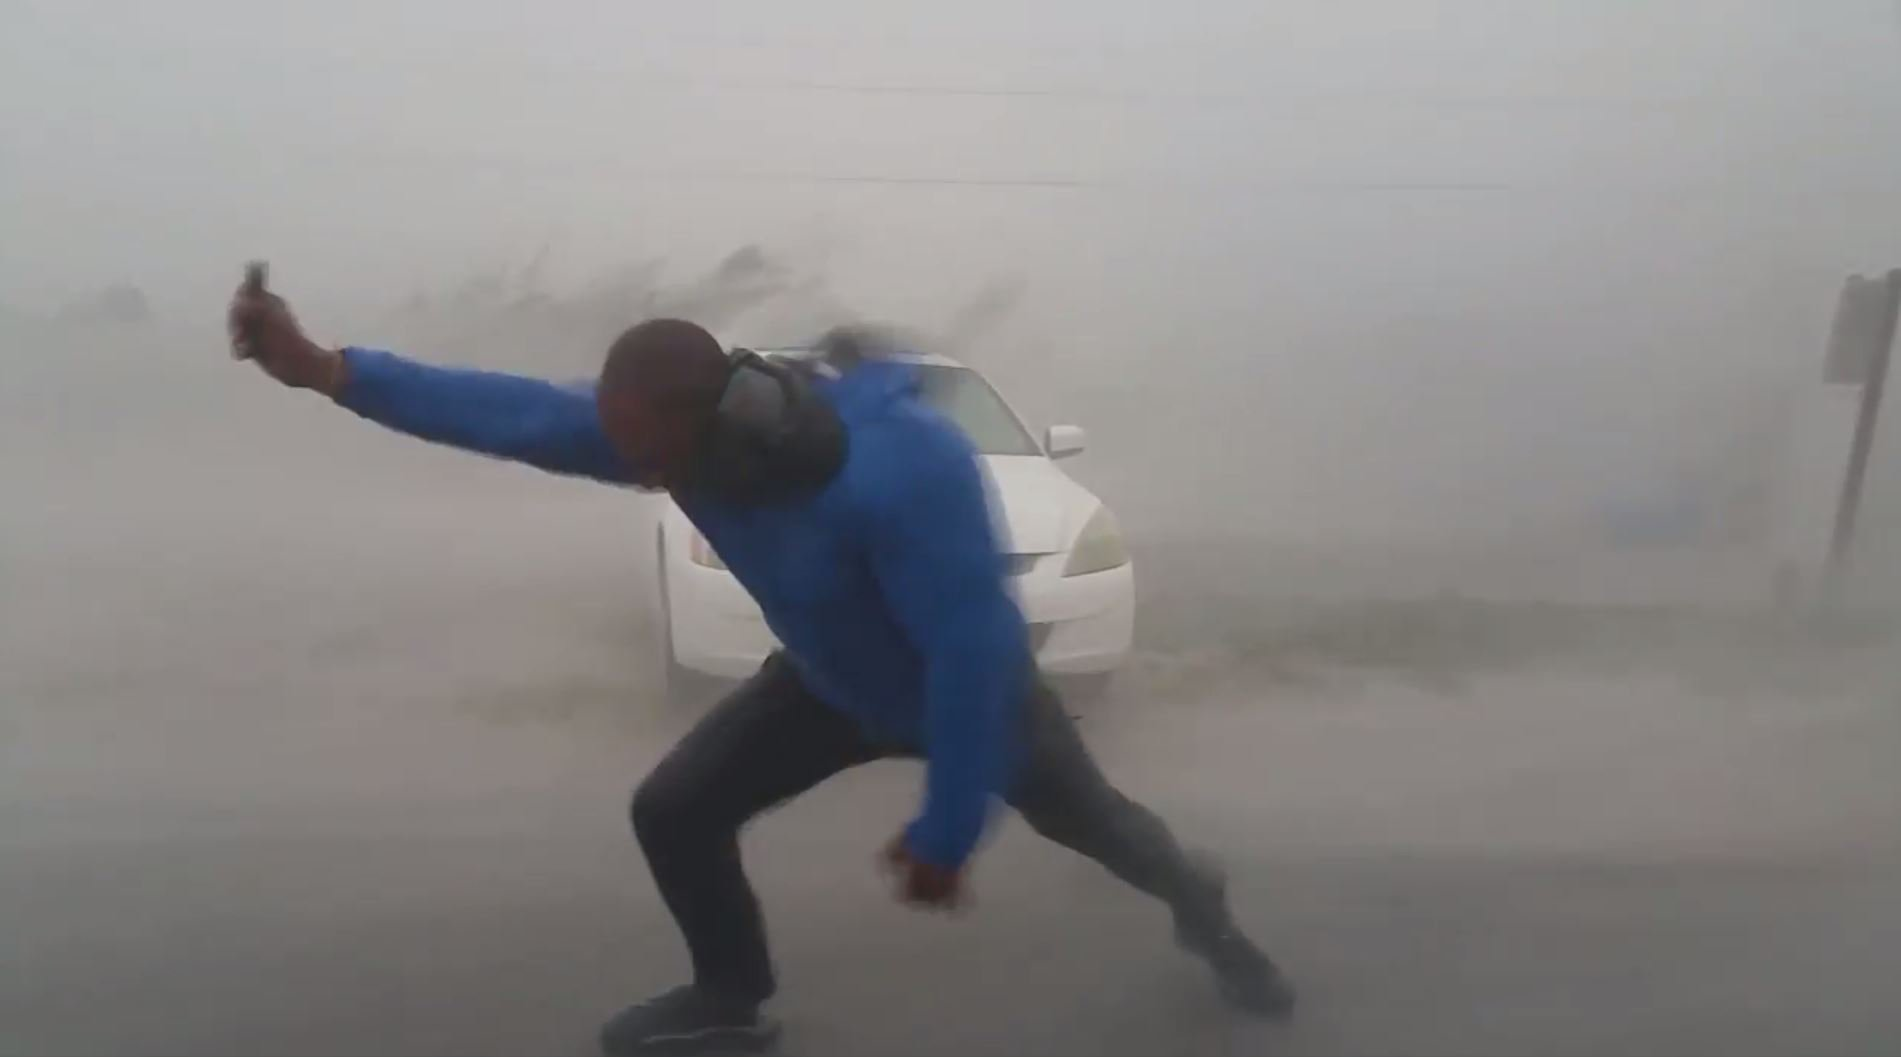 Storm-chasers get blown down Florida street trying to measure Hurricane Irma